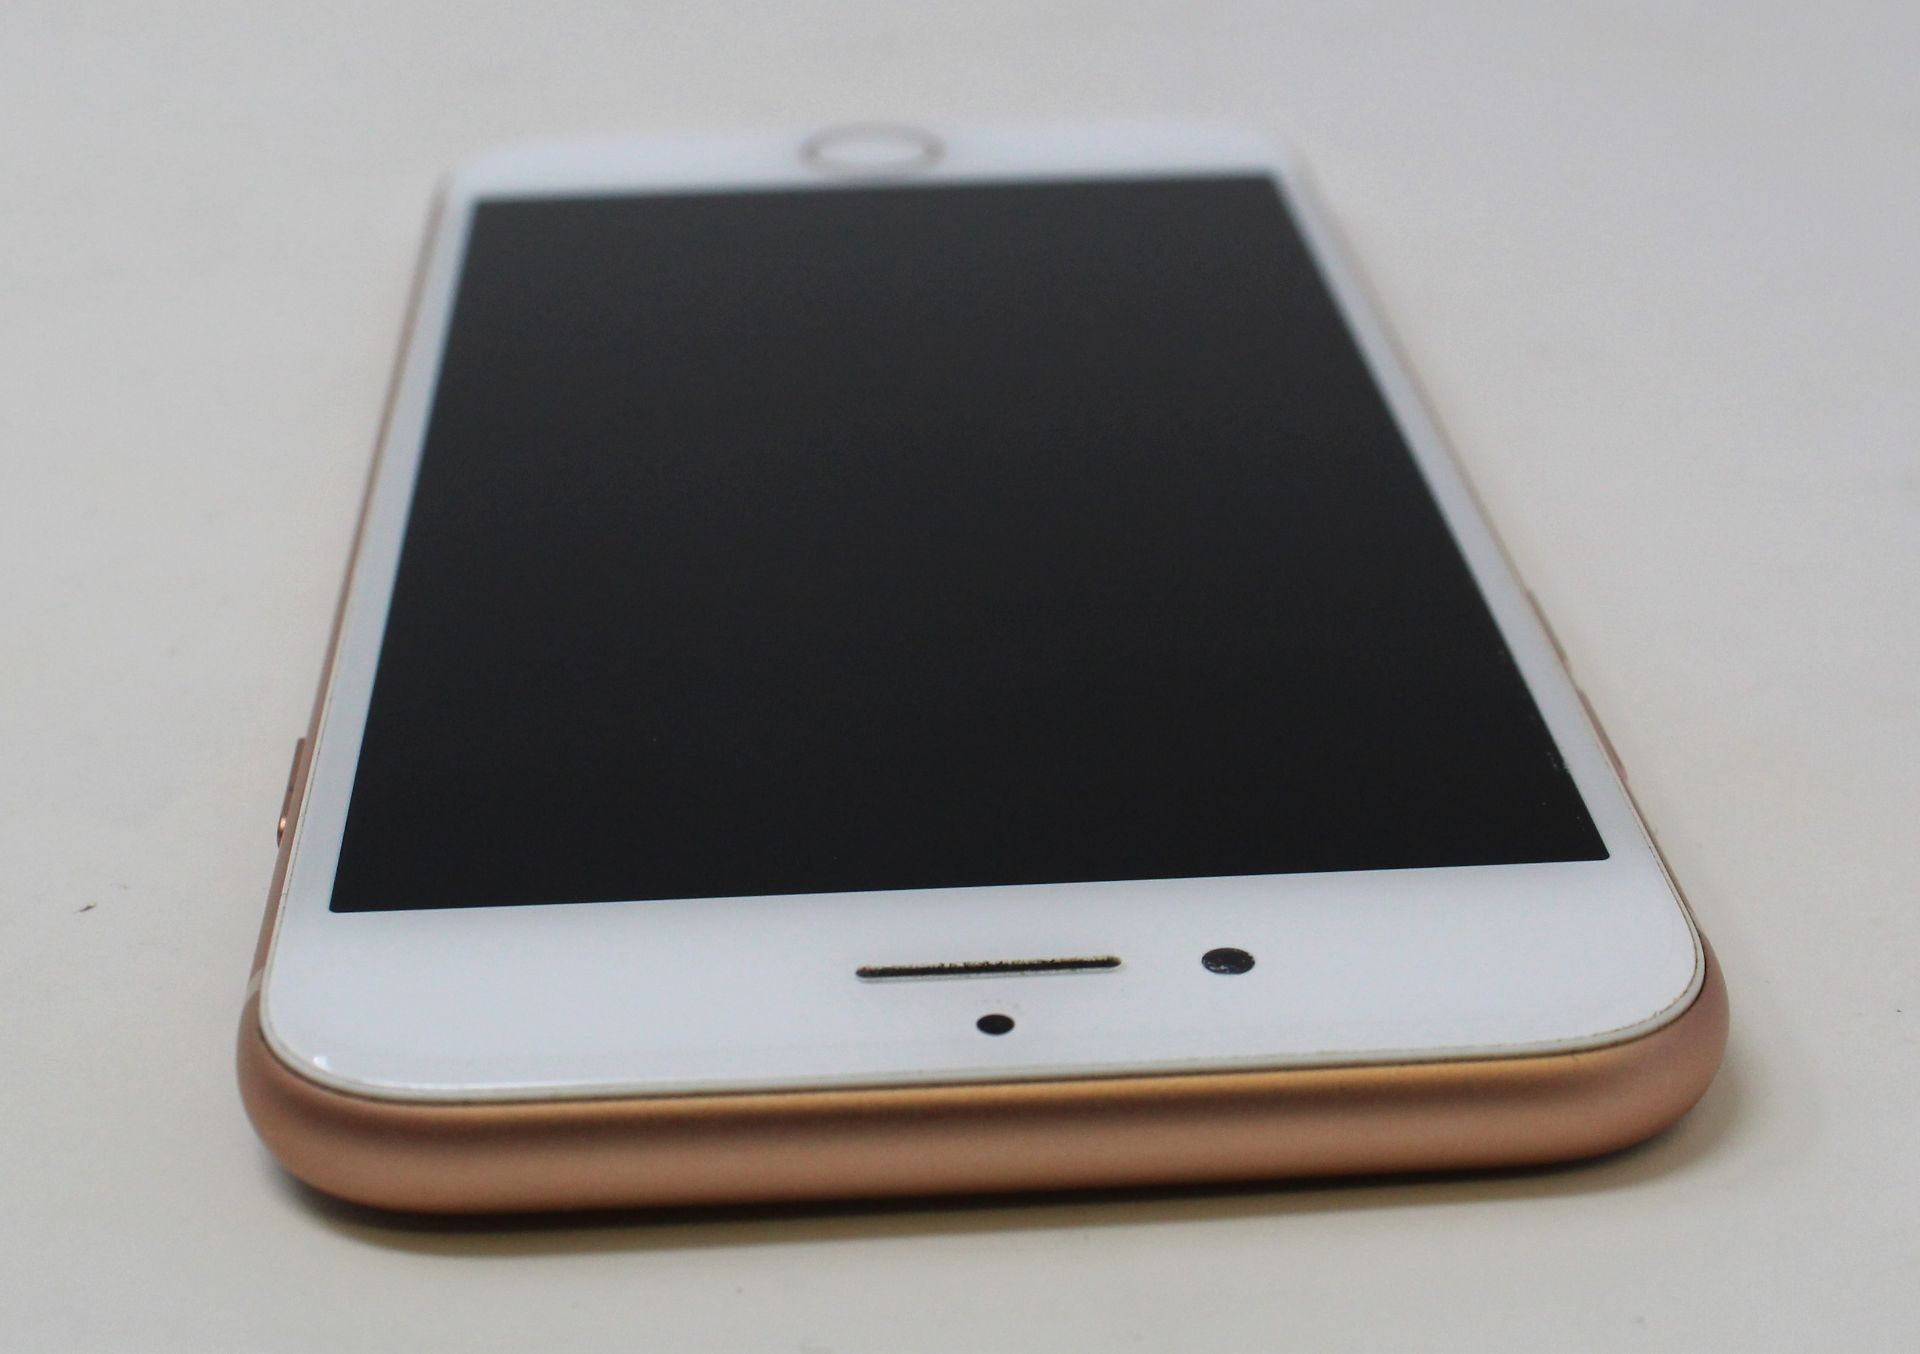 A pre-owned Apple iPhone 8 (AT&T/T-Mobile/Global/A1905) 64GB in Gold (iCloud activation clear) ( - Image 5 of 7